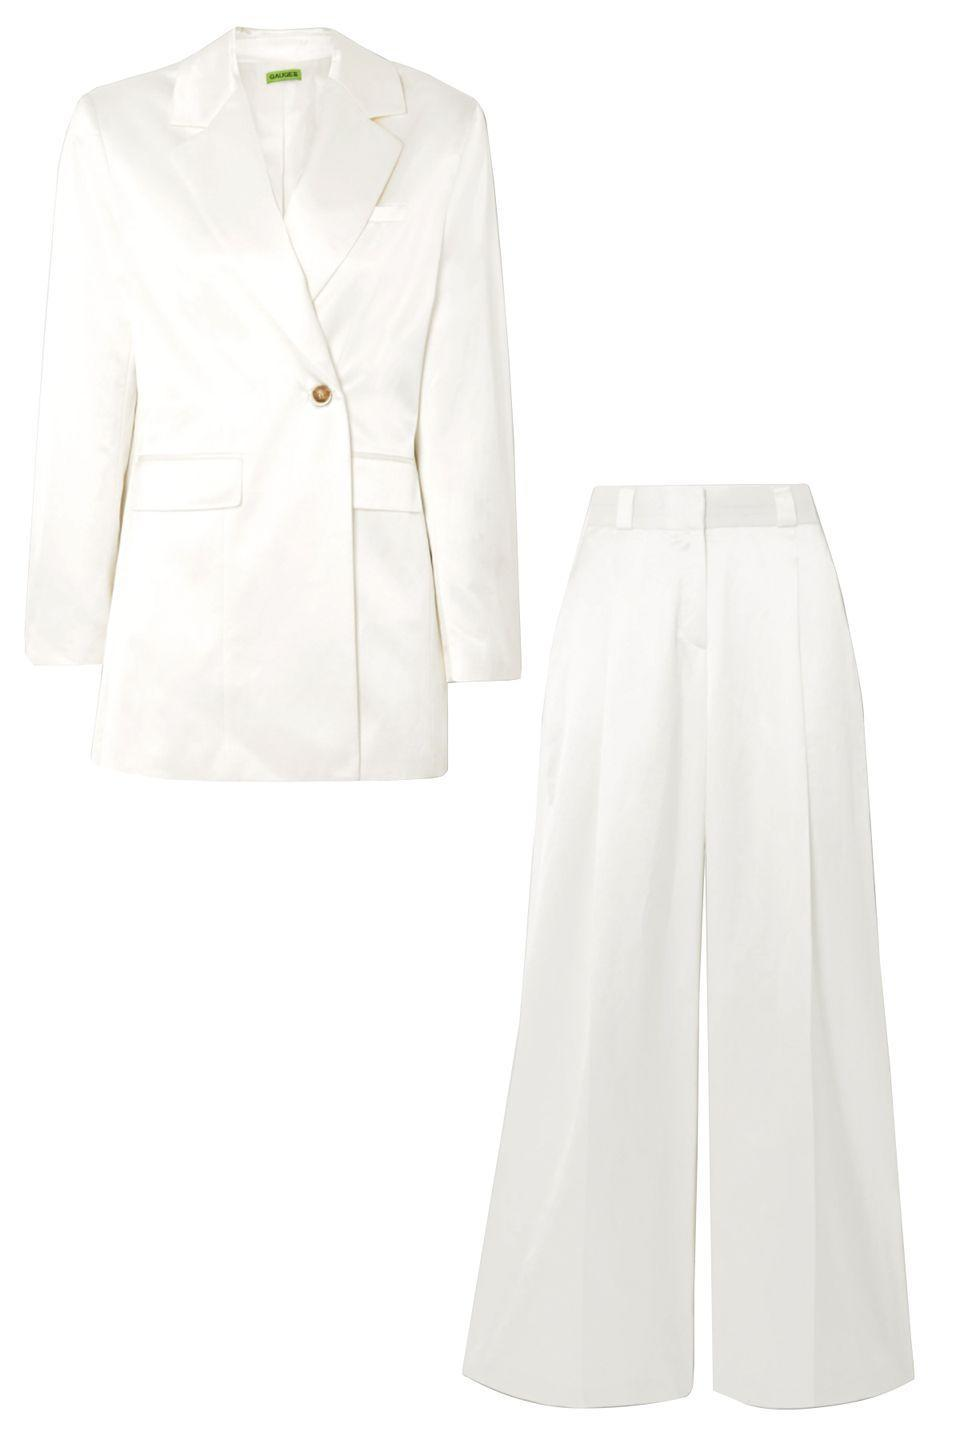 """<p>Balance out proportions with wide-legged pants and a streamlined blazer. The suit's cotton blend will feel cool and crisp in warm weather.</p><p><strong>More</strong>: <a href=""""https://www.townandcountrymag.com/style/fashion-trends/g32290758/best-non-traditional-wedding-dresses/"""" rel=""""nofollow noopener"""" target=""""_blank"""" data-ylk=""""slk:18 Stunning Non-Traditional Wedding Dresses"""" class=""""link rapid-noclick-resp"""">18 Stunning Non-Traditional Wedding Dresses </a><br><a href=""""https://go.skimresources.com?id=74968X1525087&xs=1&url=https%3A%2F%2Fwww.net-a-porter.com%2Fen-us%2Fshop%2Fproduct%2Fgauge81%2Fseattle-cotton-blend-blazer%2F1246809"""" rel=""""nofollow noopener"""" target=""""_blank"""" data-ylk=""""slk:Gauge81 Blazer"""" class=""""link rapid-noclick-resp""""><br>Gauge81 Blazer</a><a href=""""https://go.skimresources.com?id=74968X1525087&xs=1&url=https%3A%2F%2Fwww.net-a-porter.com%2Fen-us%2Fshop%2Fproduct%2Fgauge81%2Fcleveland-pleated-cotton-blend-wide-leg-pants%2F1246811"""" rel=""""nofollow noopener"""" target=""""_blank"""" data-ylk=""""slk:Gauge81 Pant"""" class=""""link rapid-noclick-resp""""><br>Gauge81 Pant</a></p>"""